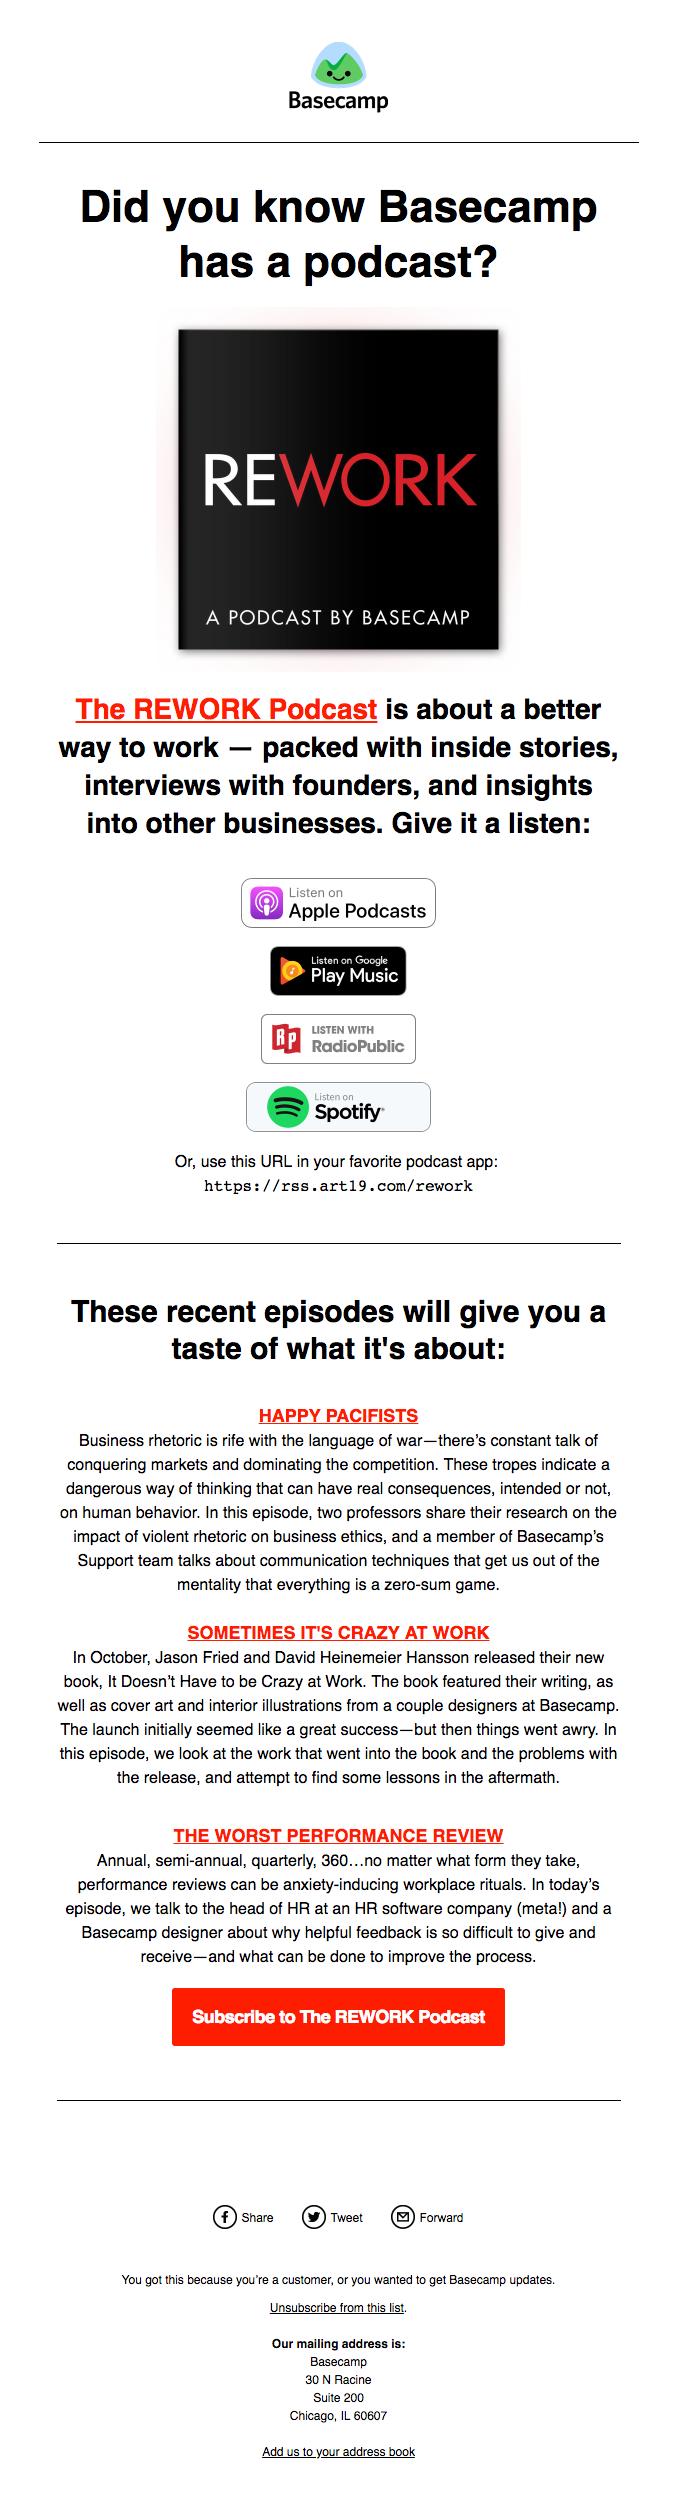 Did you know Basecamp has a podcast?